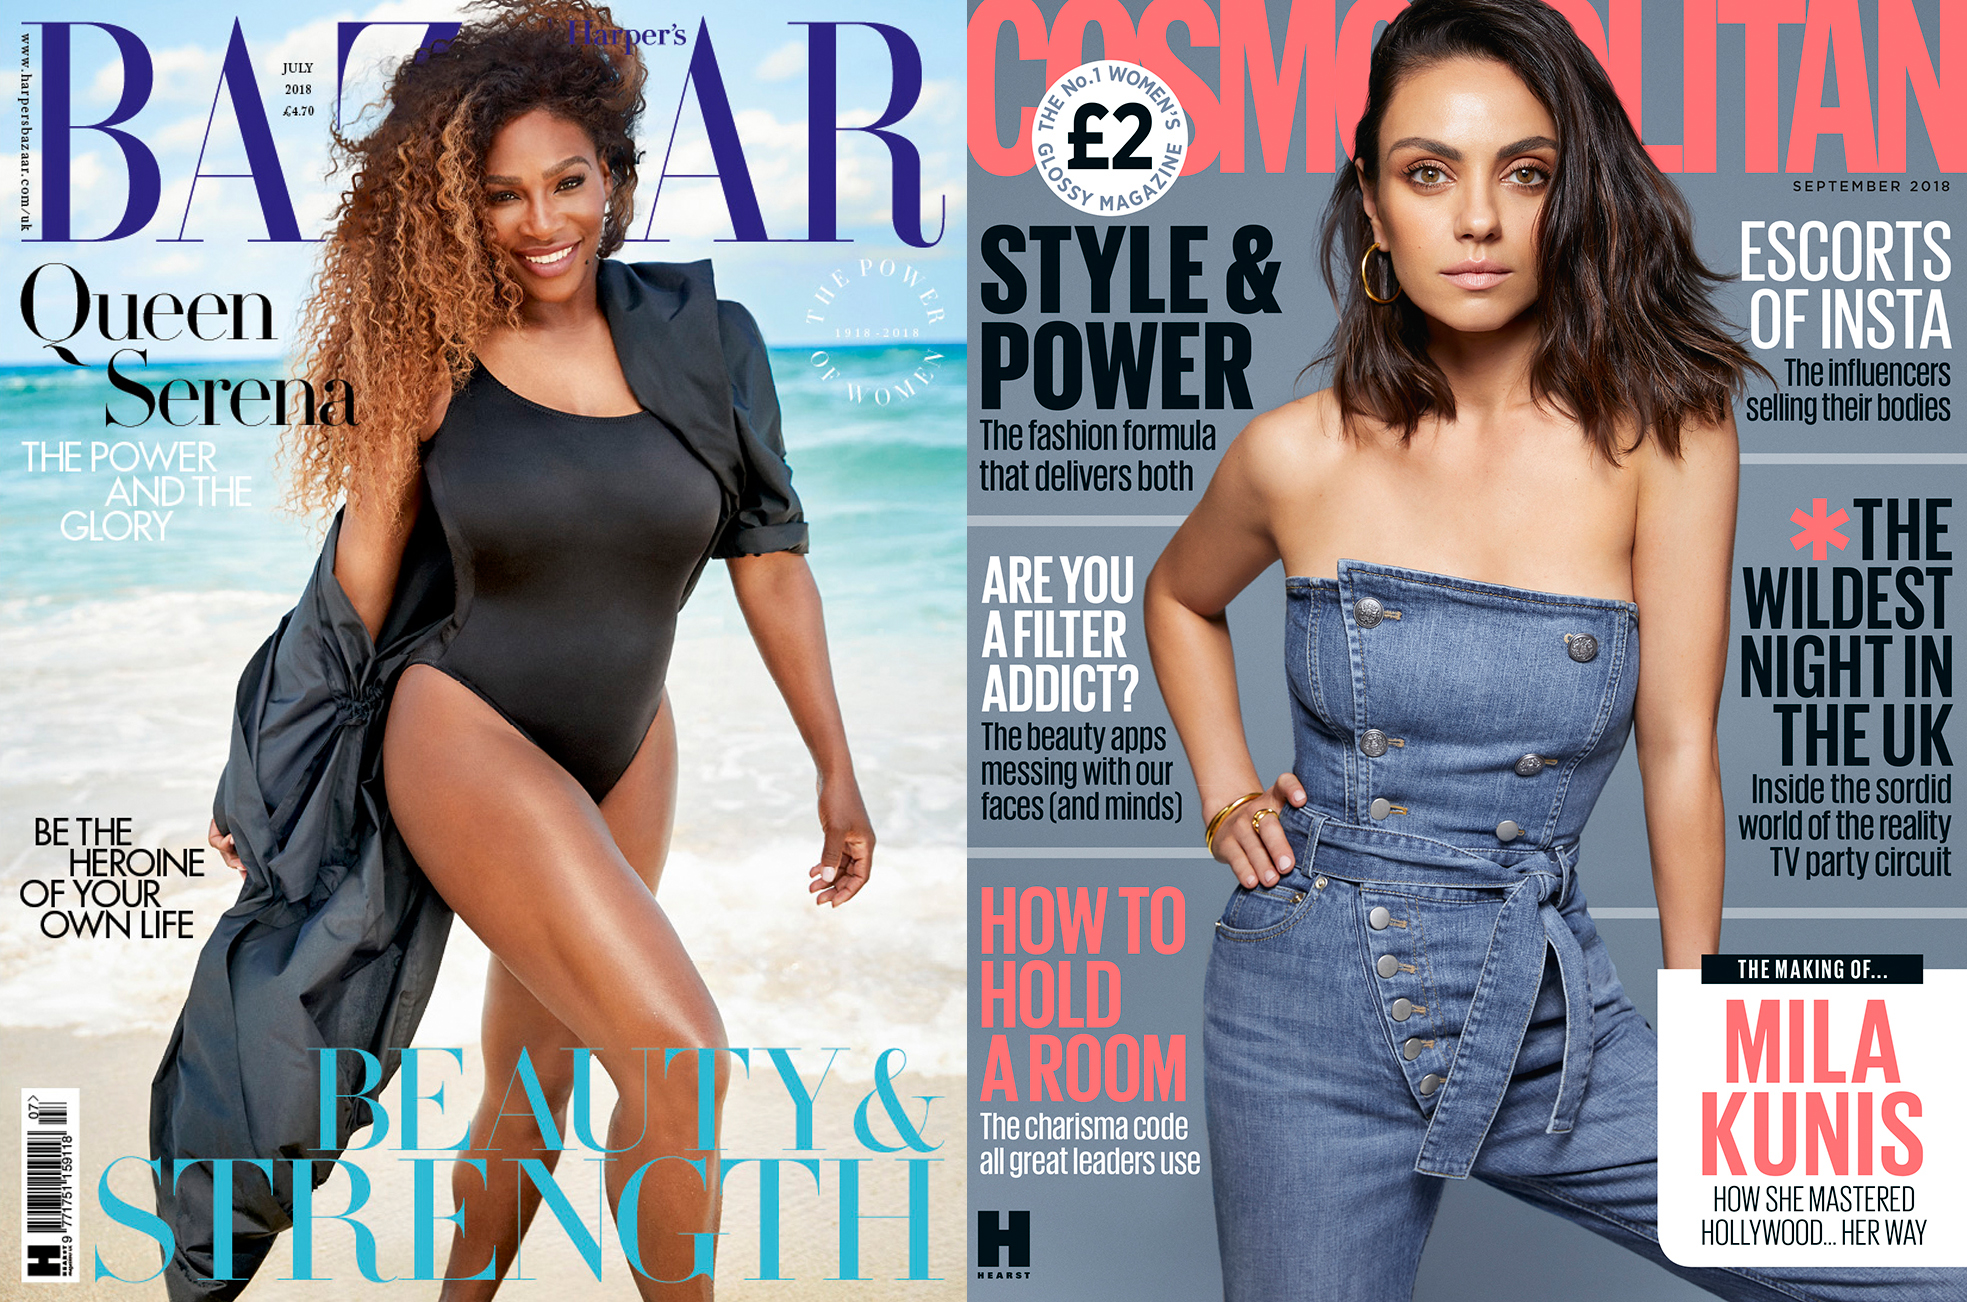 The covers of Harper's Bazaar U.K. and Cosmopolitan U.K.